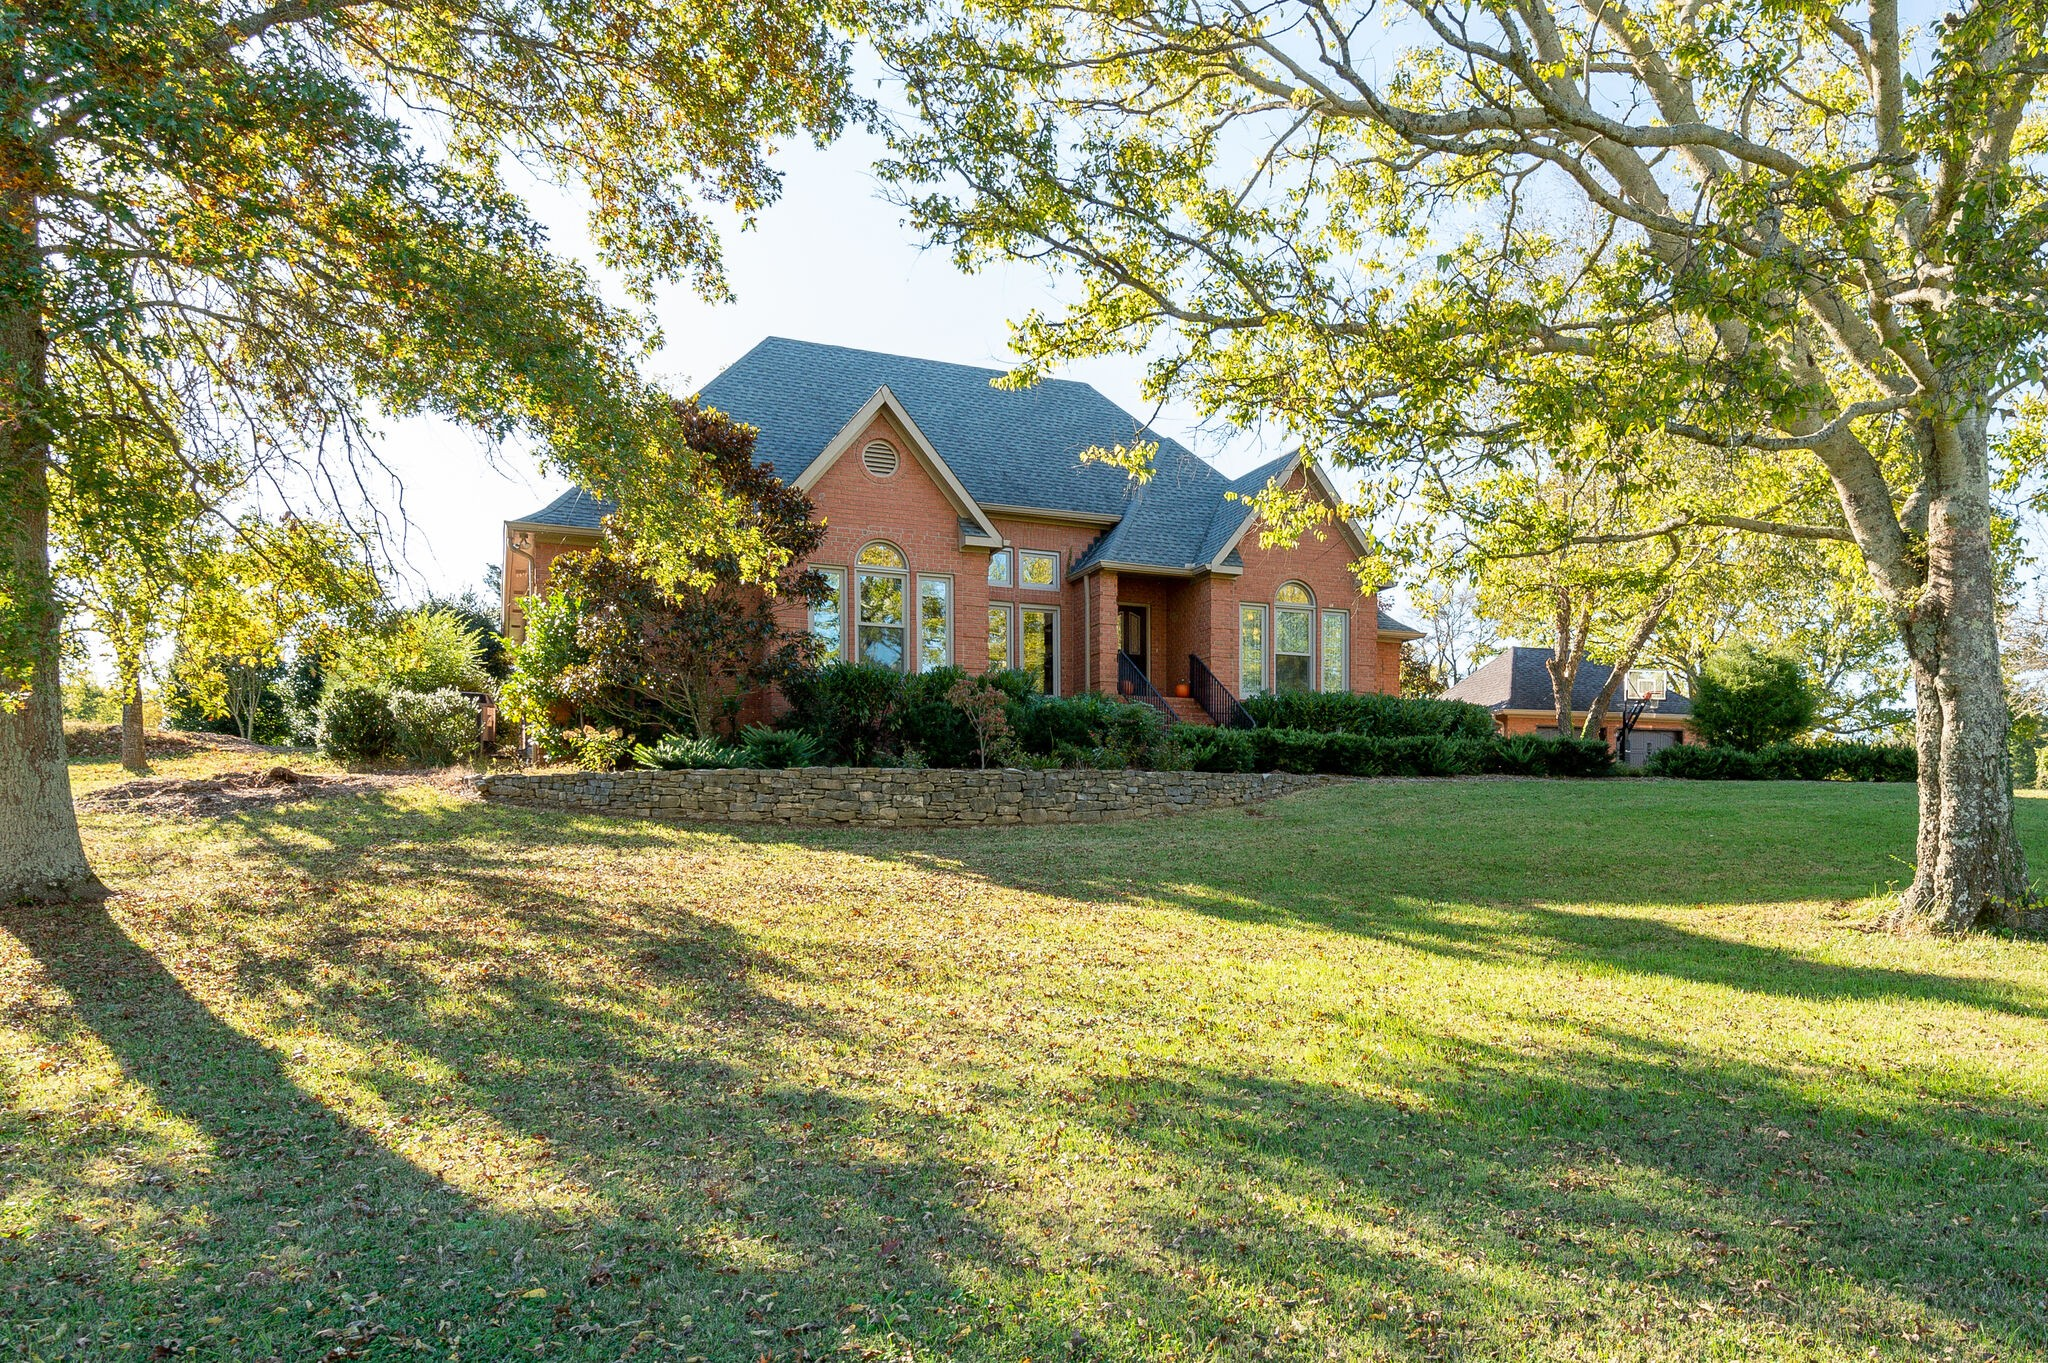 Seldom does a home under $1M come available on Old Natchez Trace. This one has it all-beautiful brick  home with upgrades, 3+ acre lot, barn & outdoor kitchen. Completely fenced so bring your animals. 4 stall barn currently used for shop & grillling/party area, kennel. Open entry to dining and living area (14' ceiling w stone fireplace) eat-in kitchen w gas cooktop; tile sunroom w windows all around. New windows & some doors. Beautiful setting on one of TN's favorite historic roads/Harpeth River